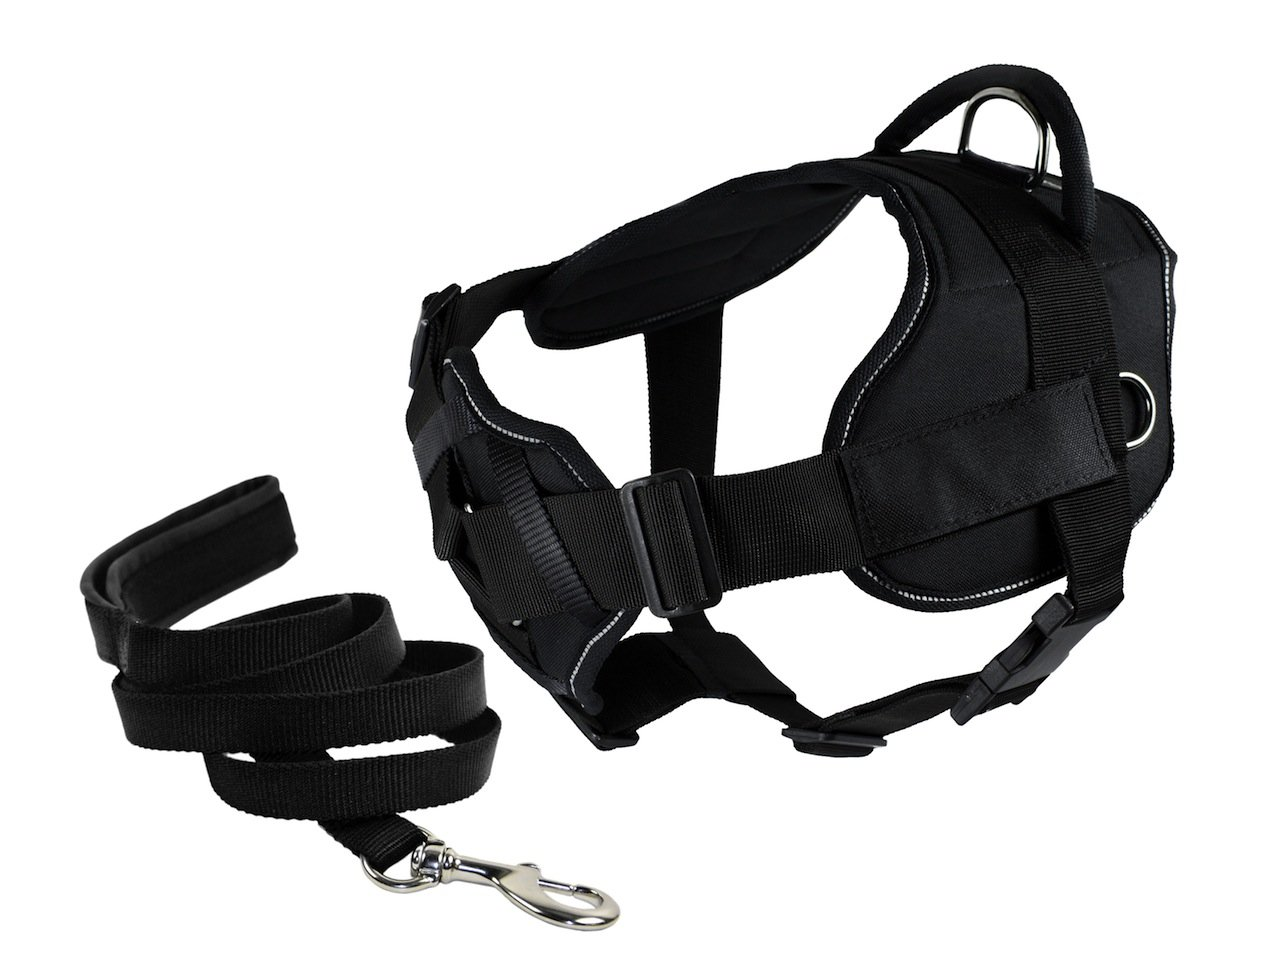 Dean & Tyler's DT Fun Chest Support Harness with Reflective Trim, Medium, and 6 ft Padded Puppy Leash.